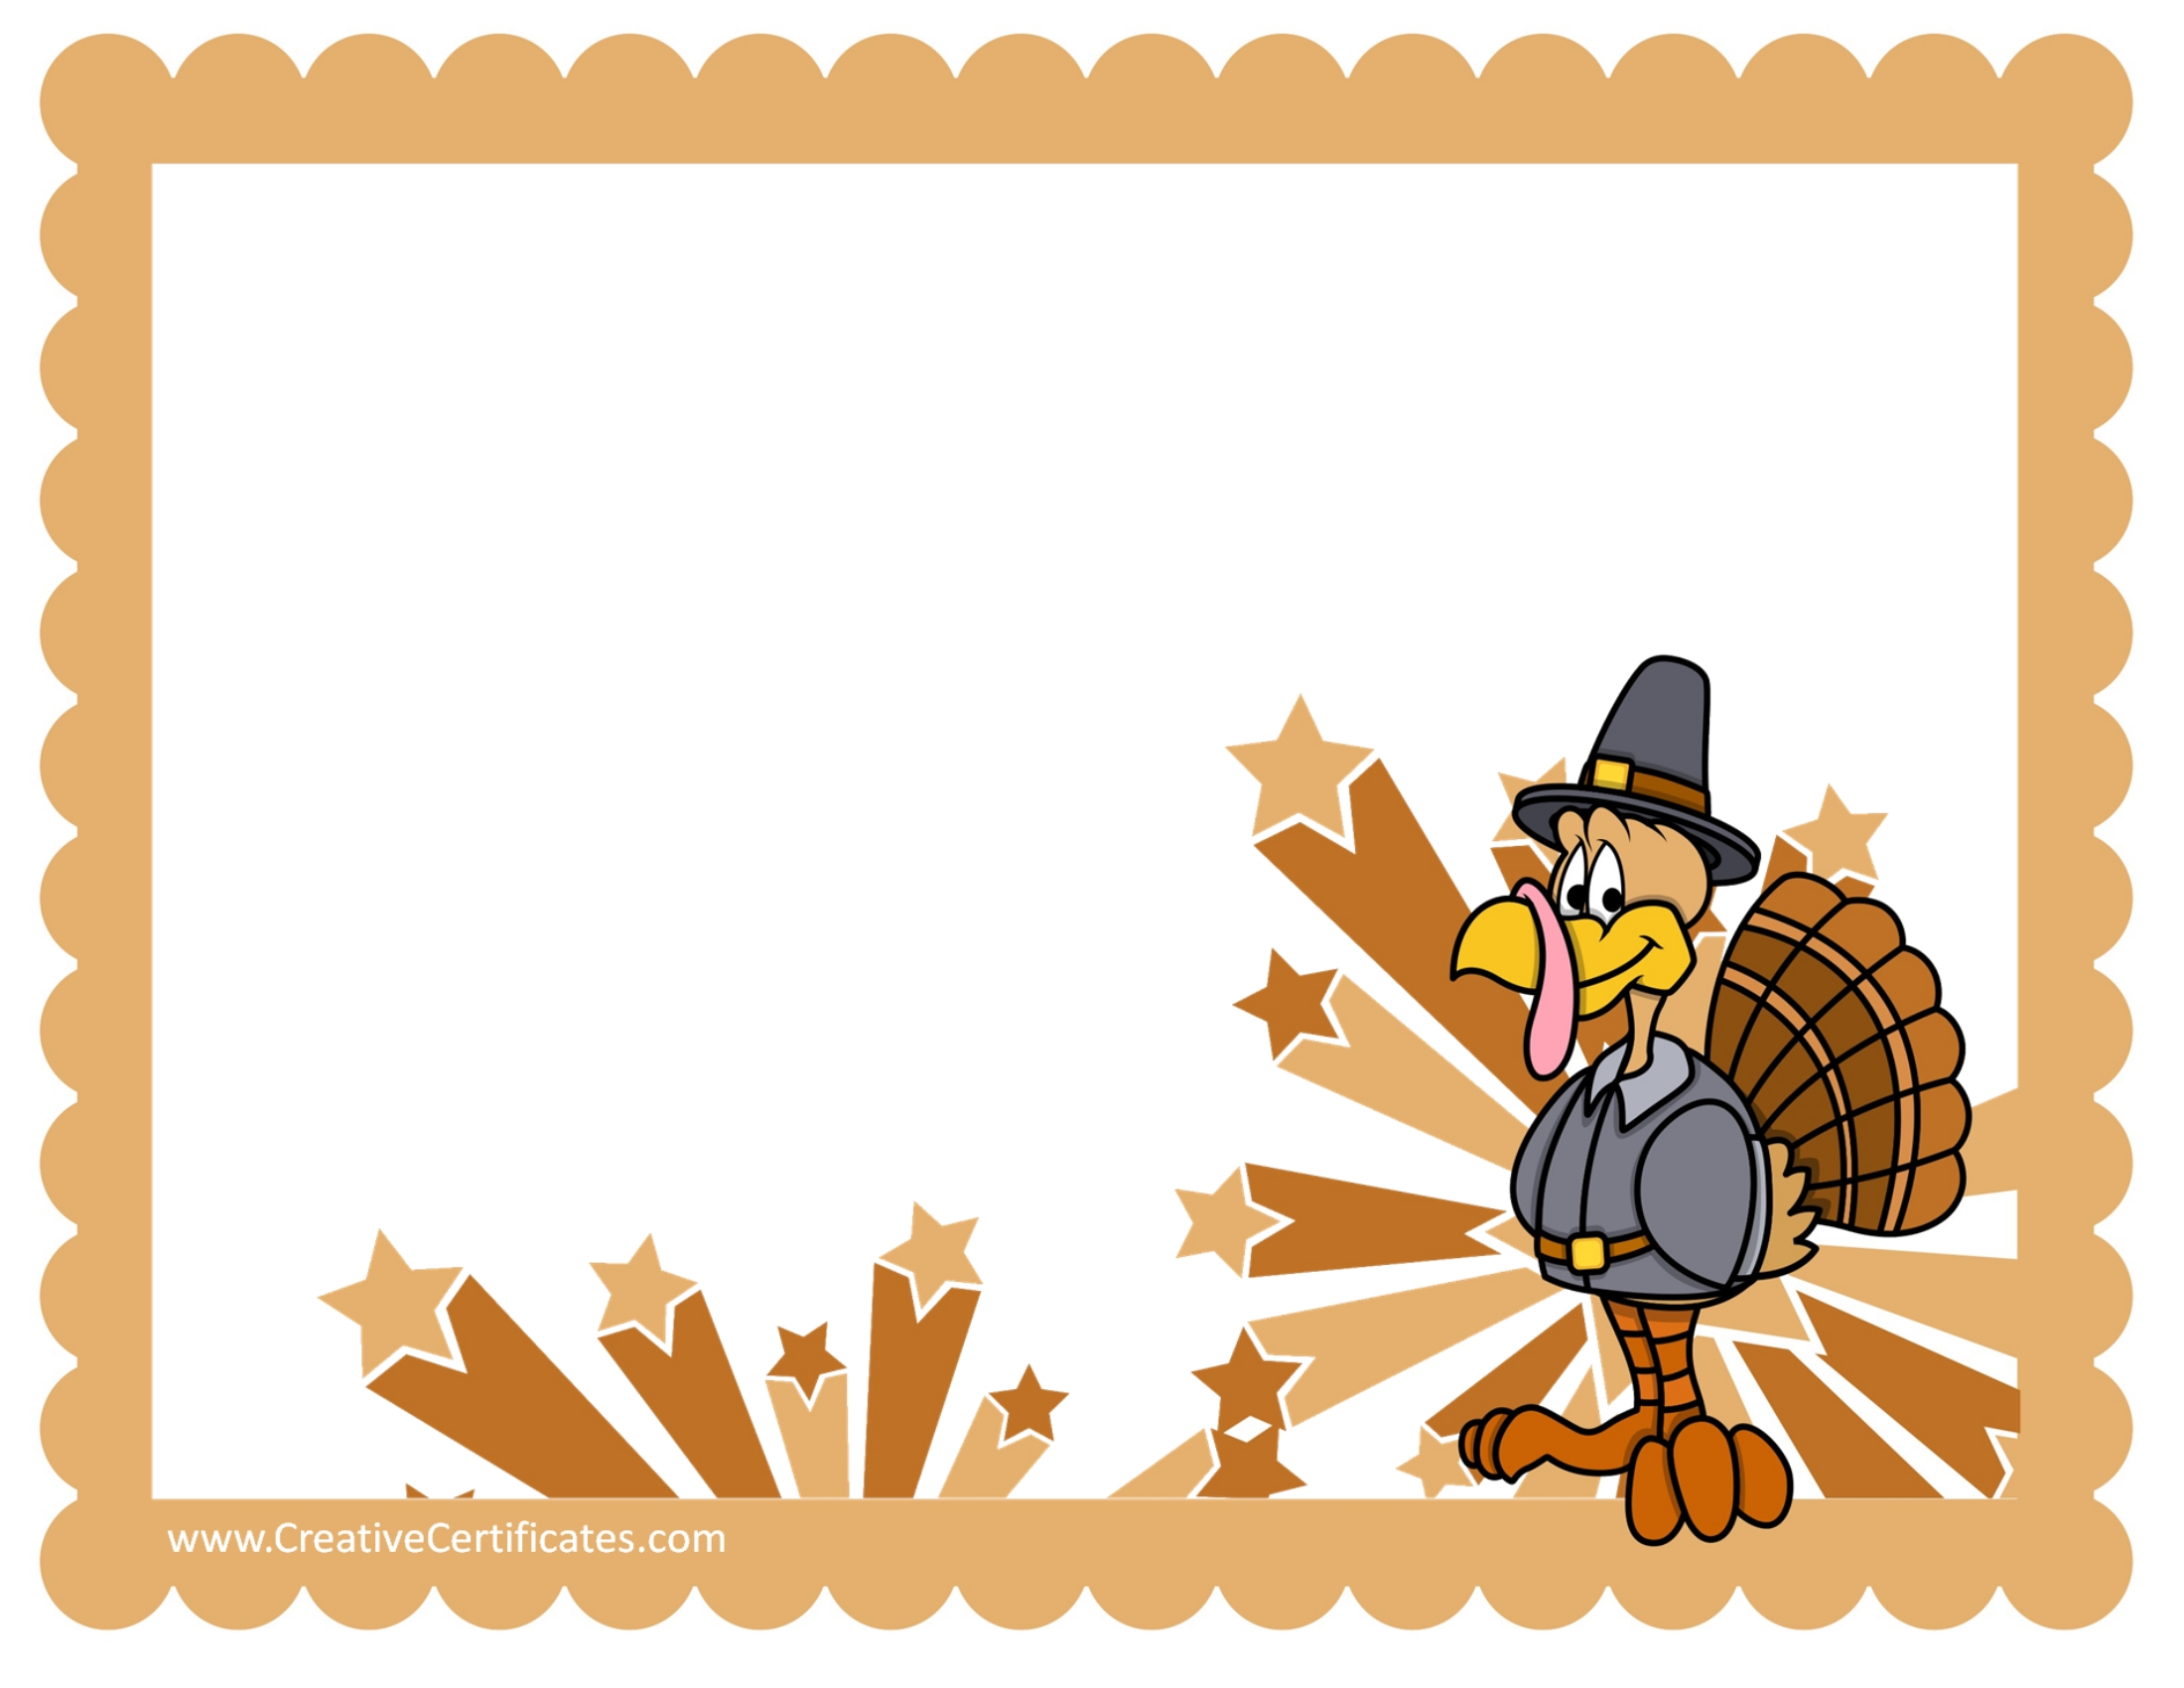 Happy thanksgiving clipart borders free library Free Thanksgiving Cliparts Borders, Download Free Clip Art, Free ... free library